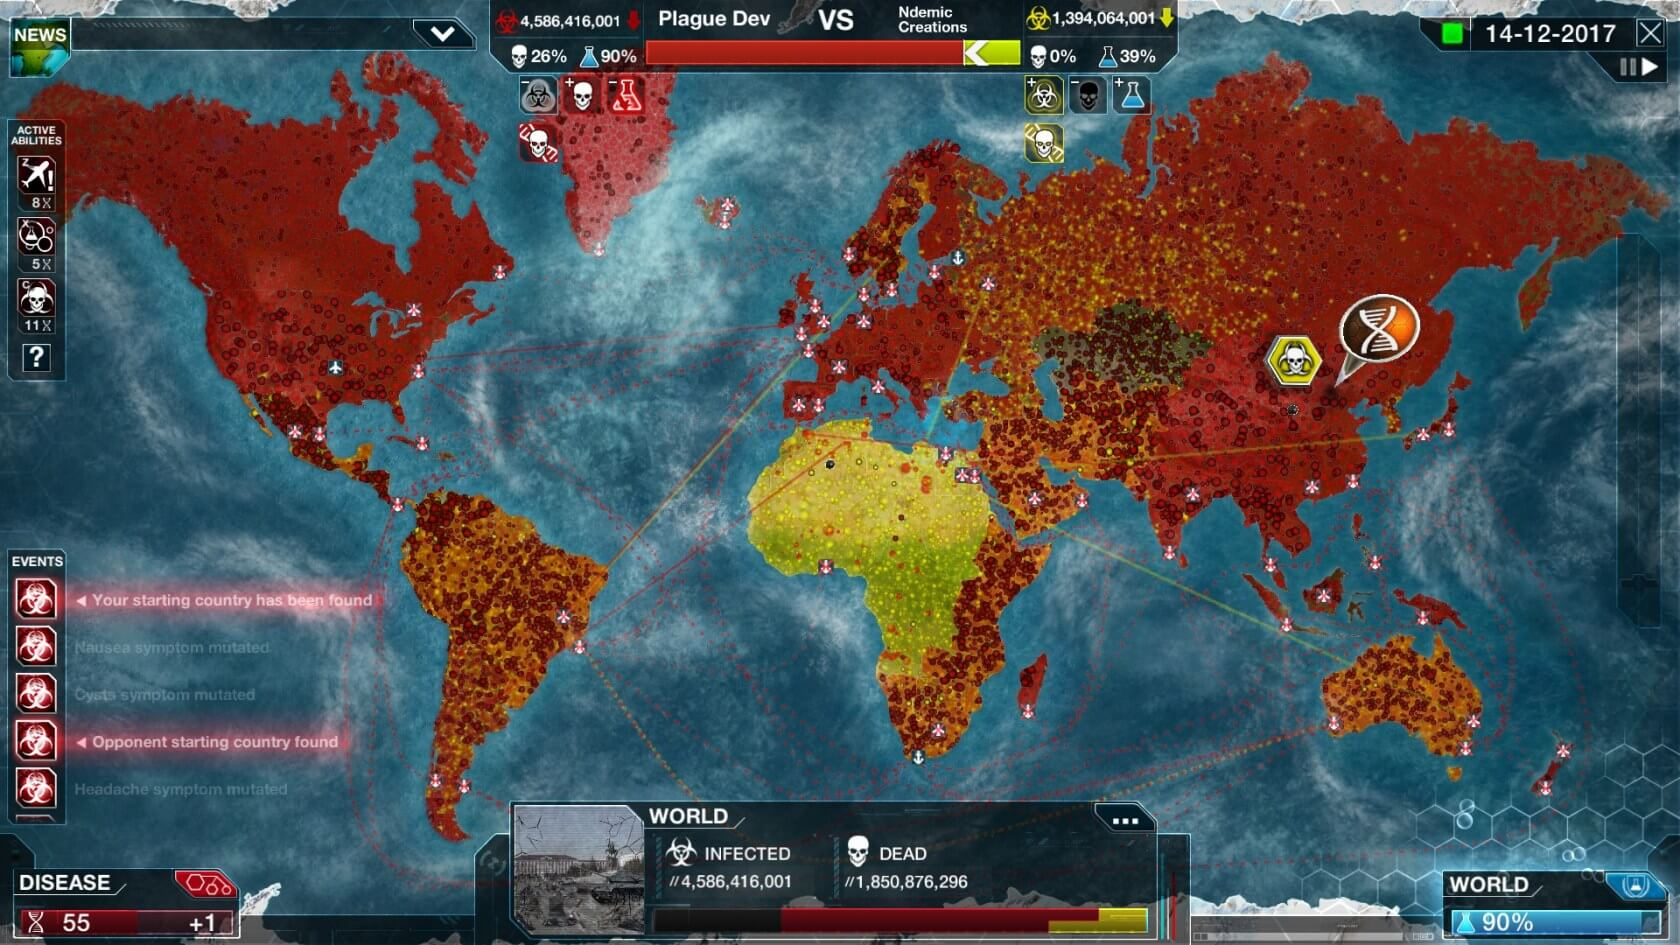 Plague Inc.'s new mode lets players save the world from a pandemic instead of destroying it